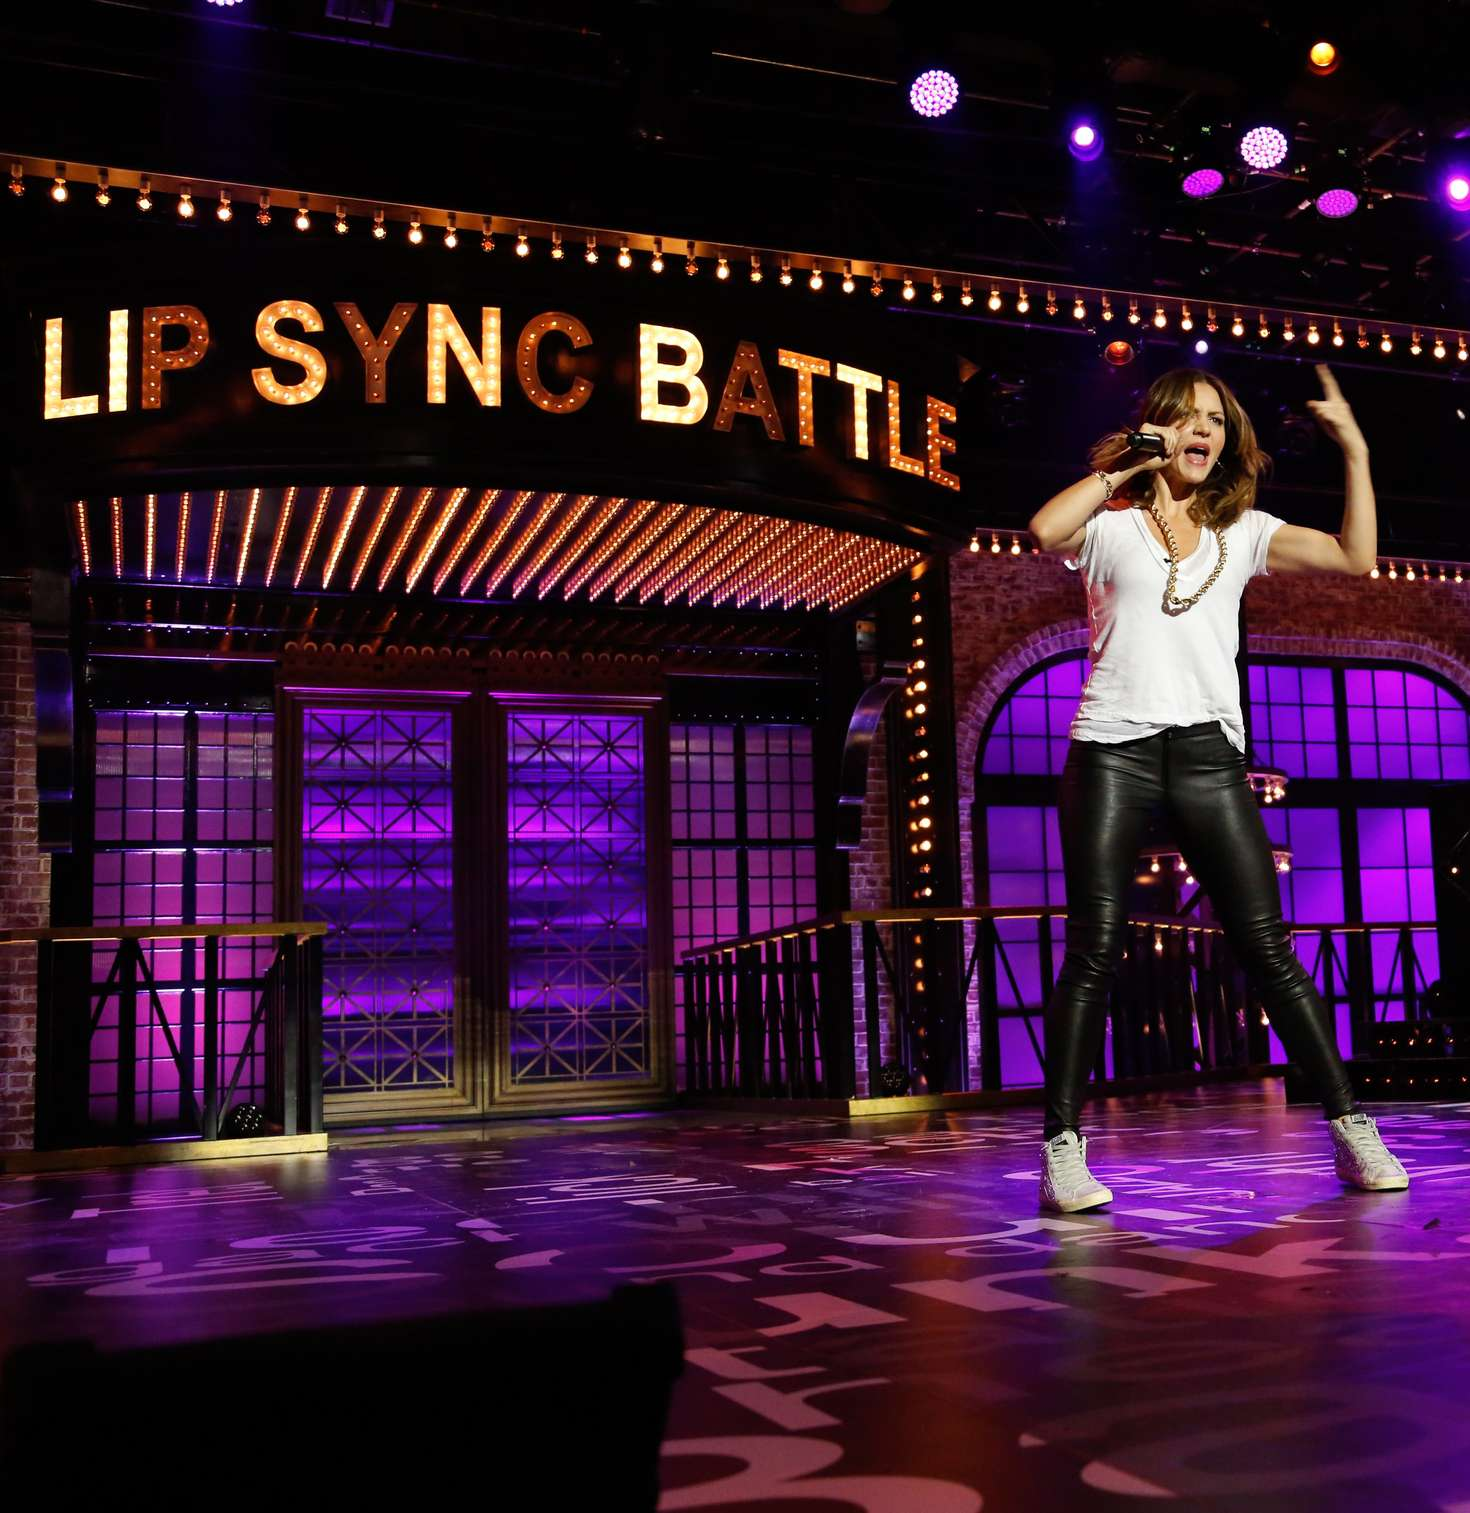 Gigi Hadid On Lip Sync Battle Video: Lip Sync Battle Stills